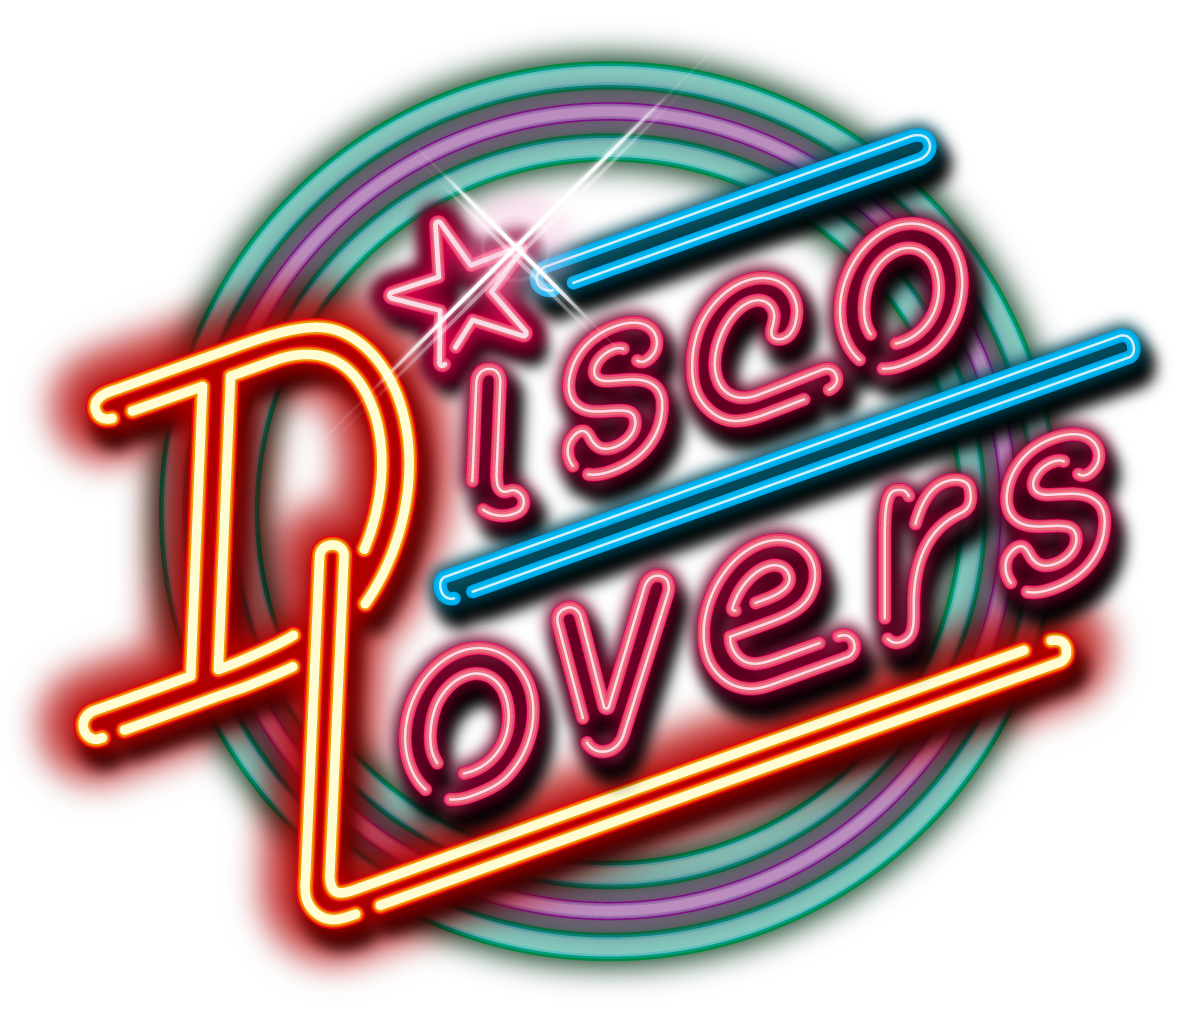 DISCO LOVERS